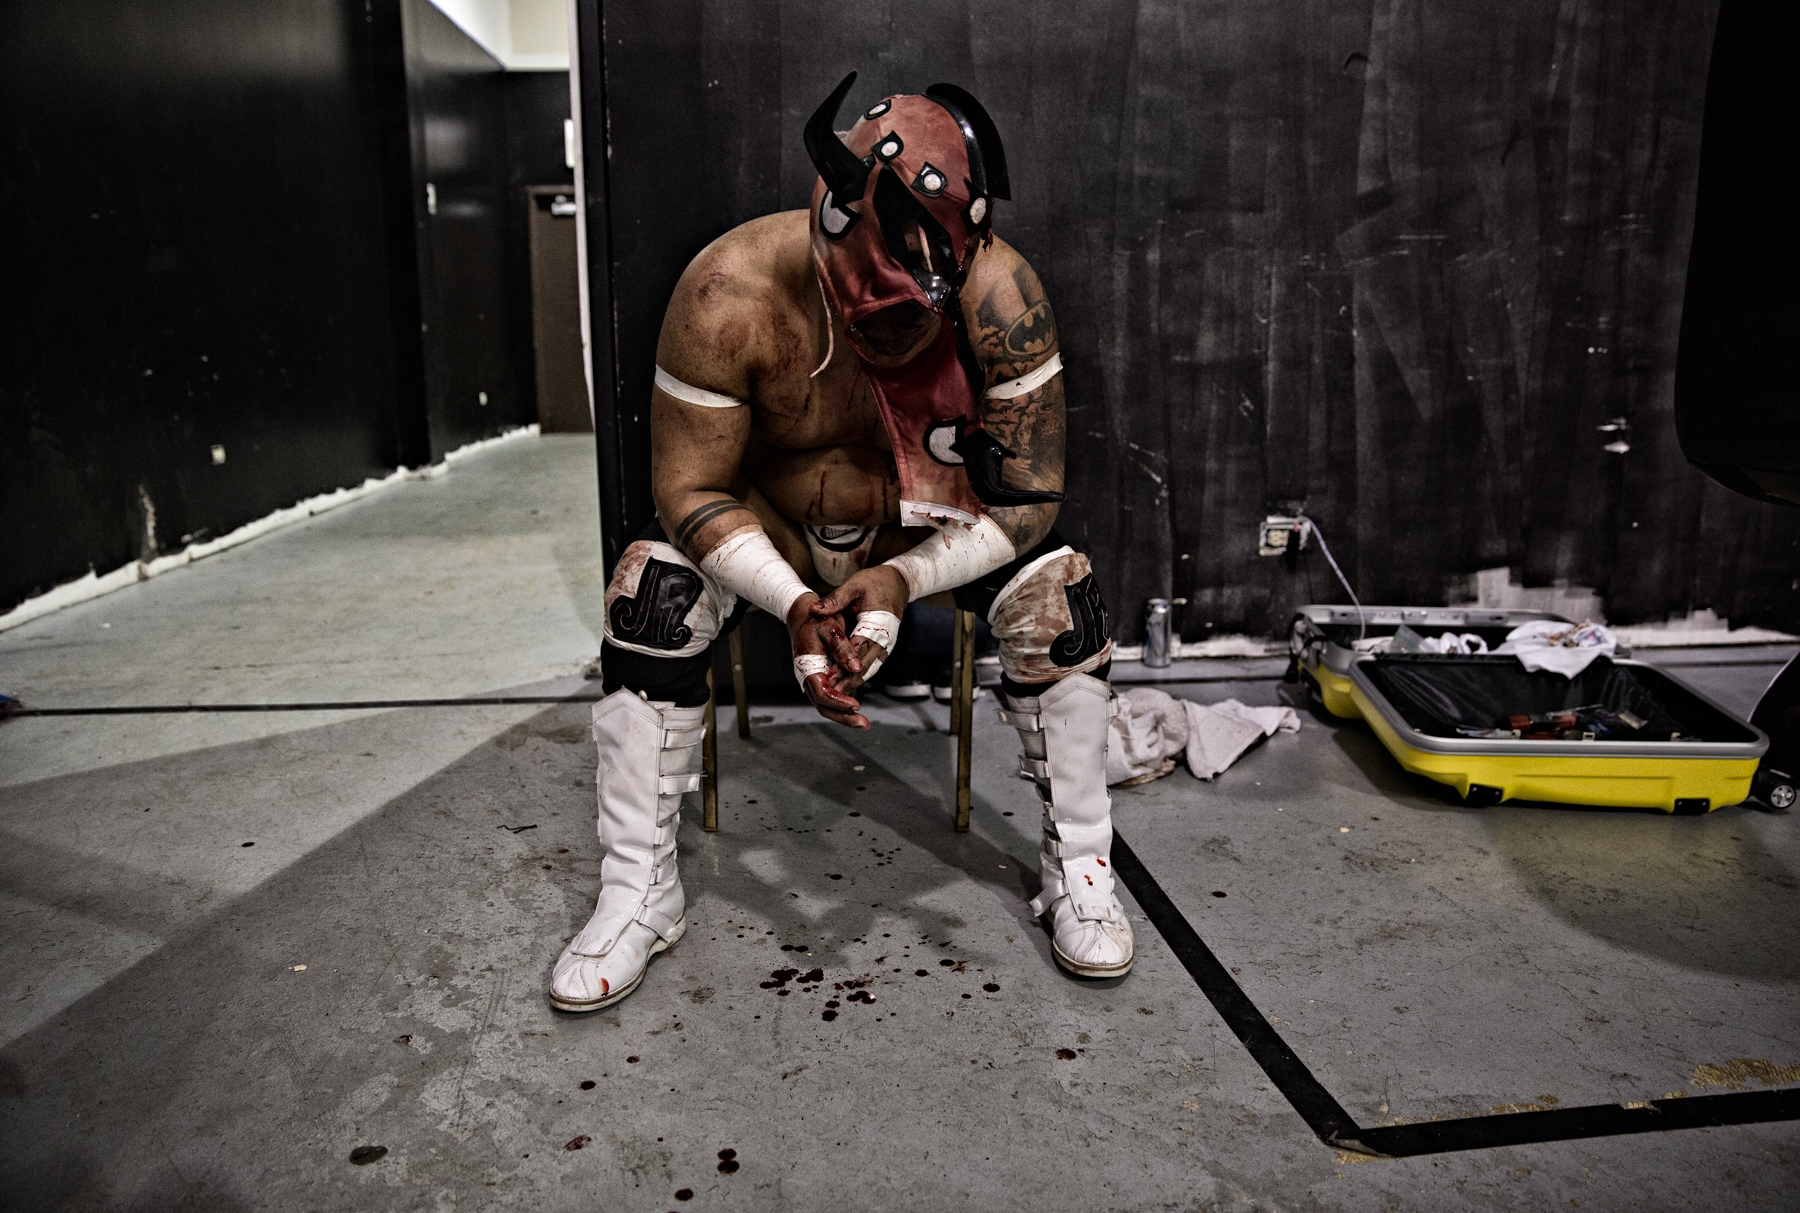 Art and Documentary Photography - Loading LuchaLibre-3195-Edit-2.jpg